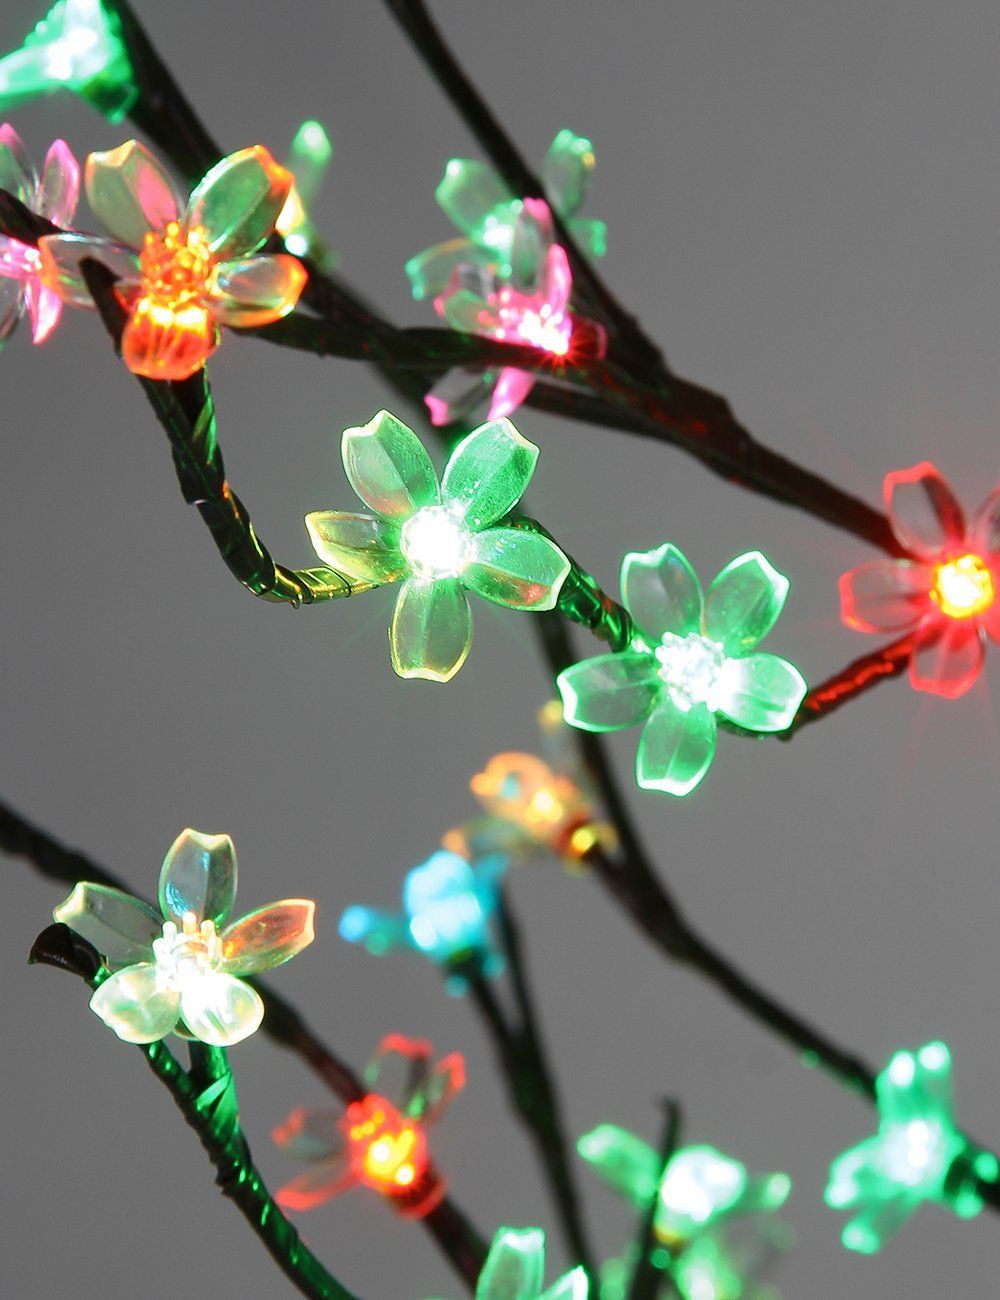 Cherry blossom flowers color changing light tree has 208 LED lights ...